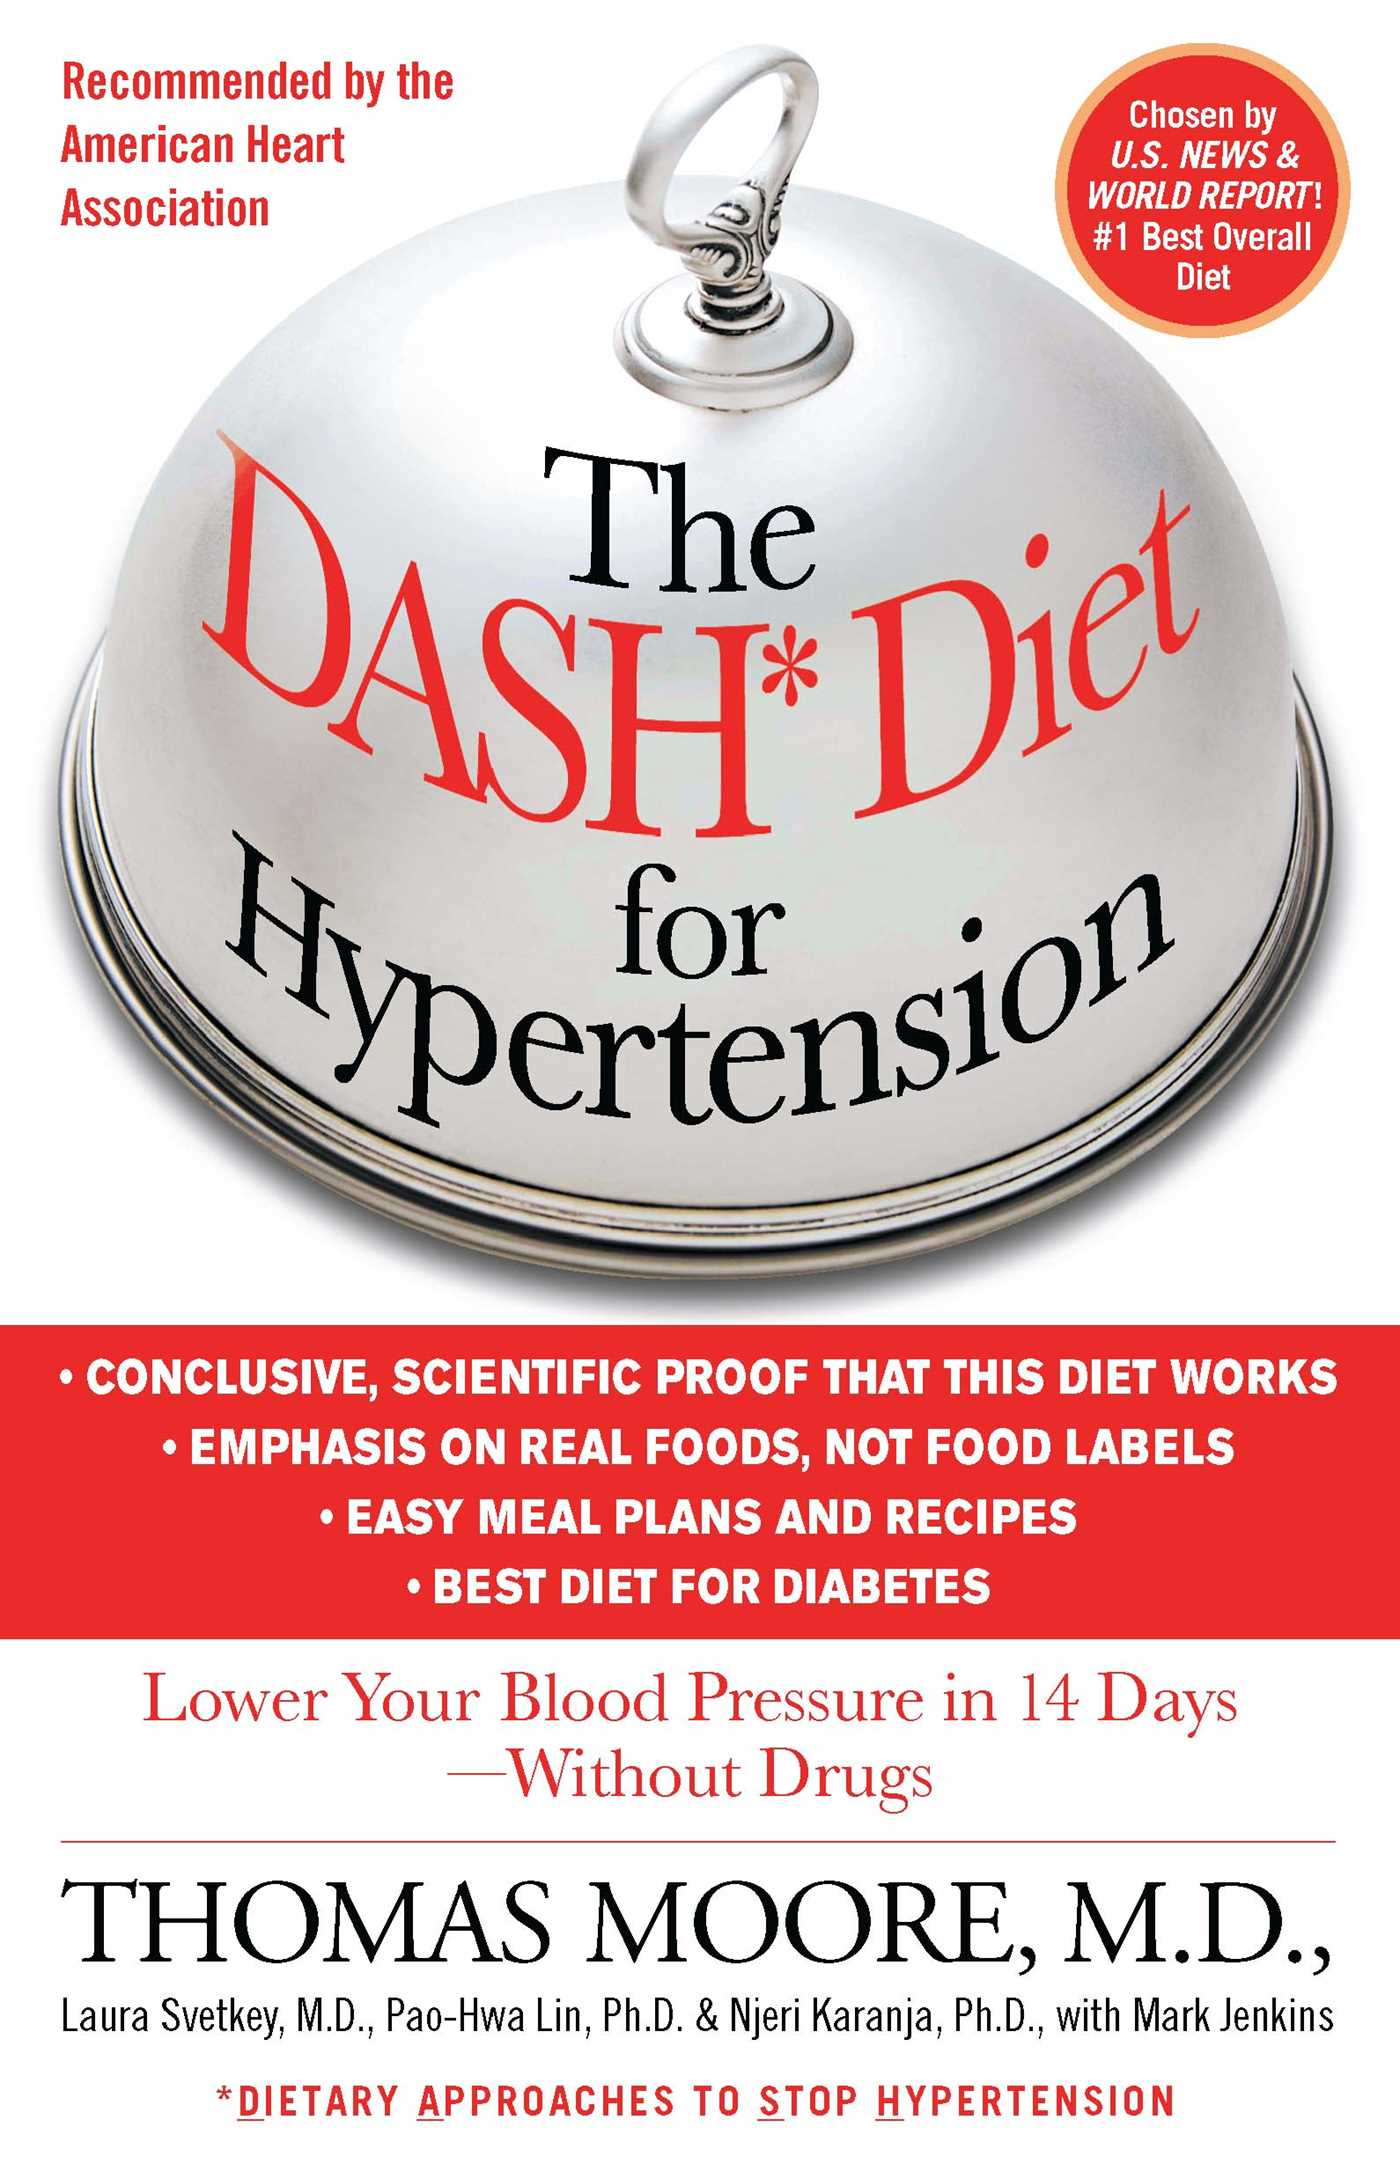 The dash diet for hypertension 9781451665581 hr